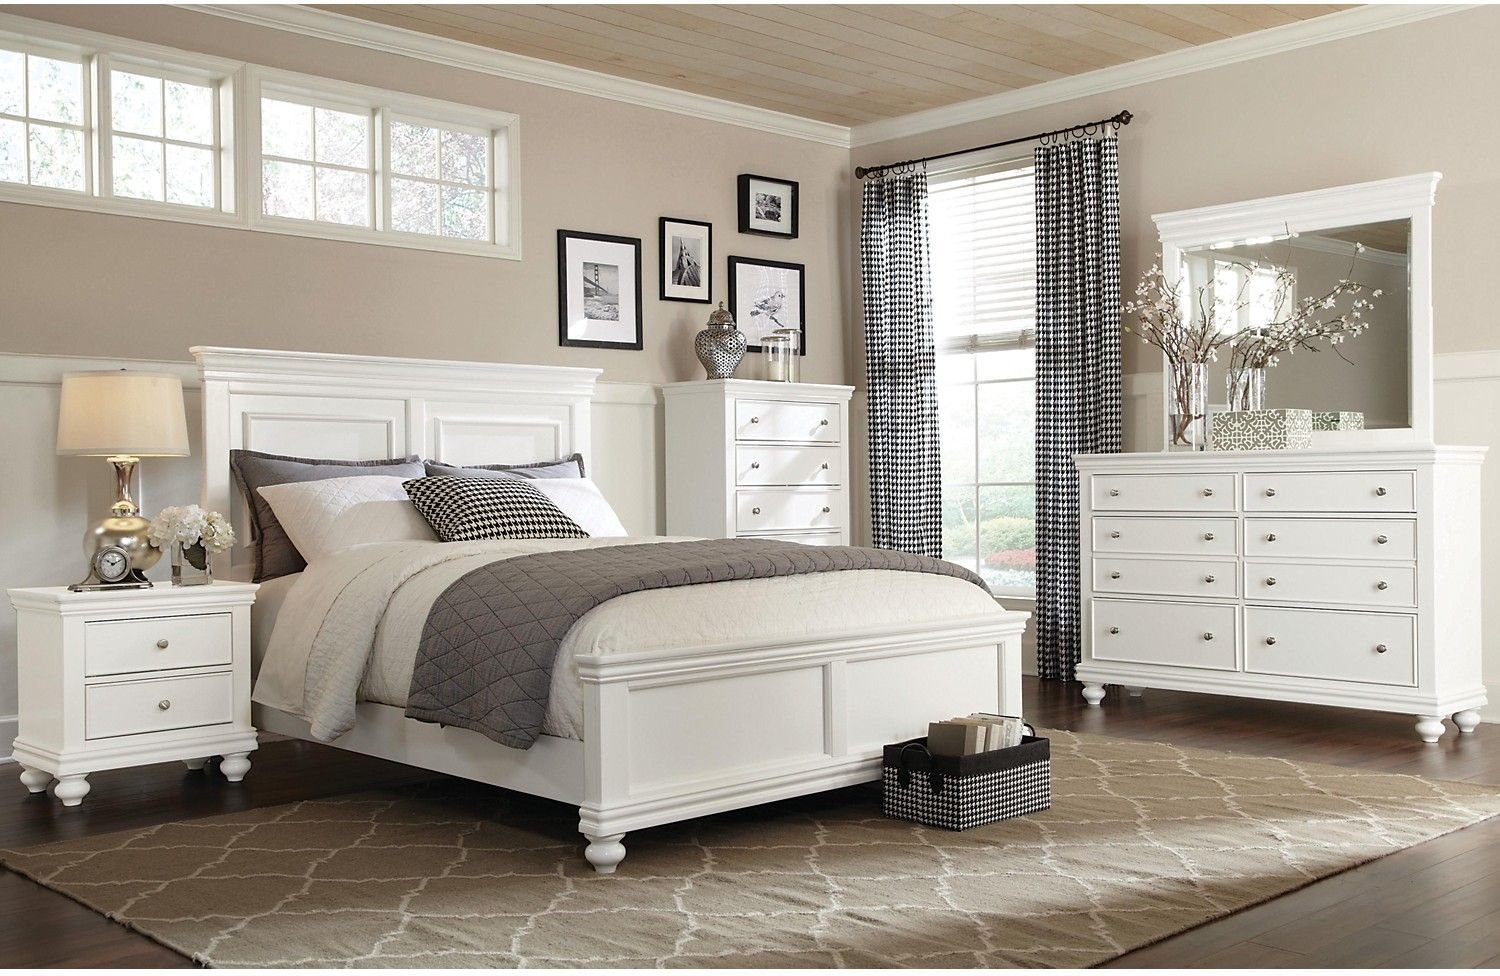 Best Bridgeport 6 Piece Queen Bedroom Set – White Queen With Pictures